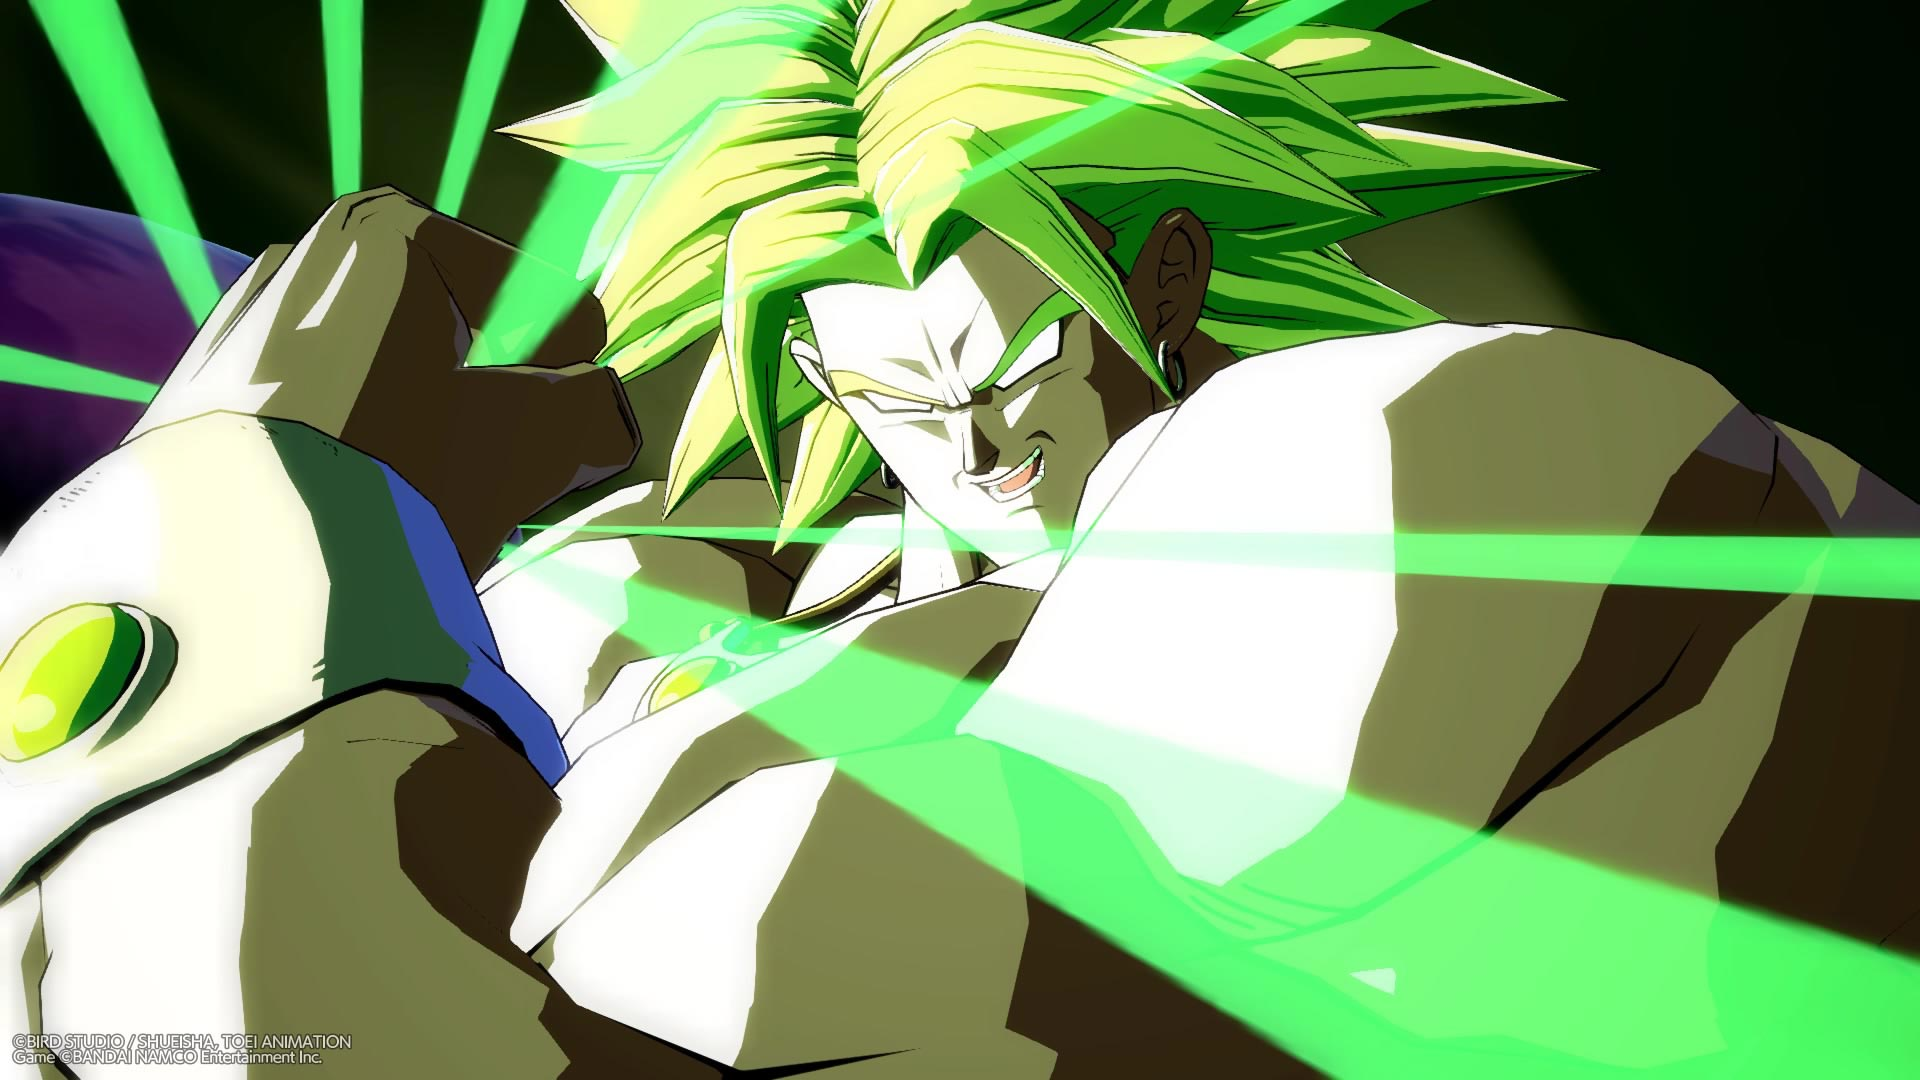 Broly and Bardock screenshots in Dragon Ball FighterZ 3 out of 12 image gallery